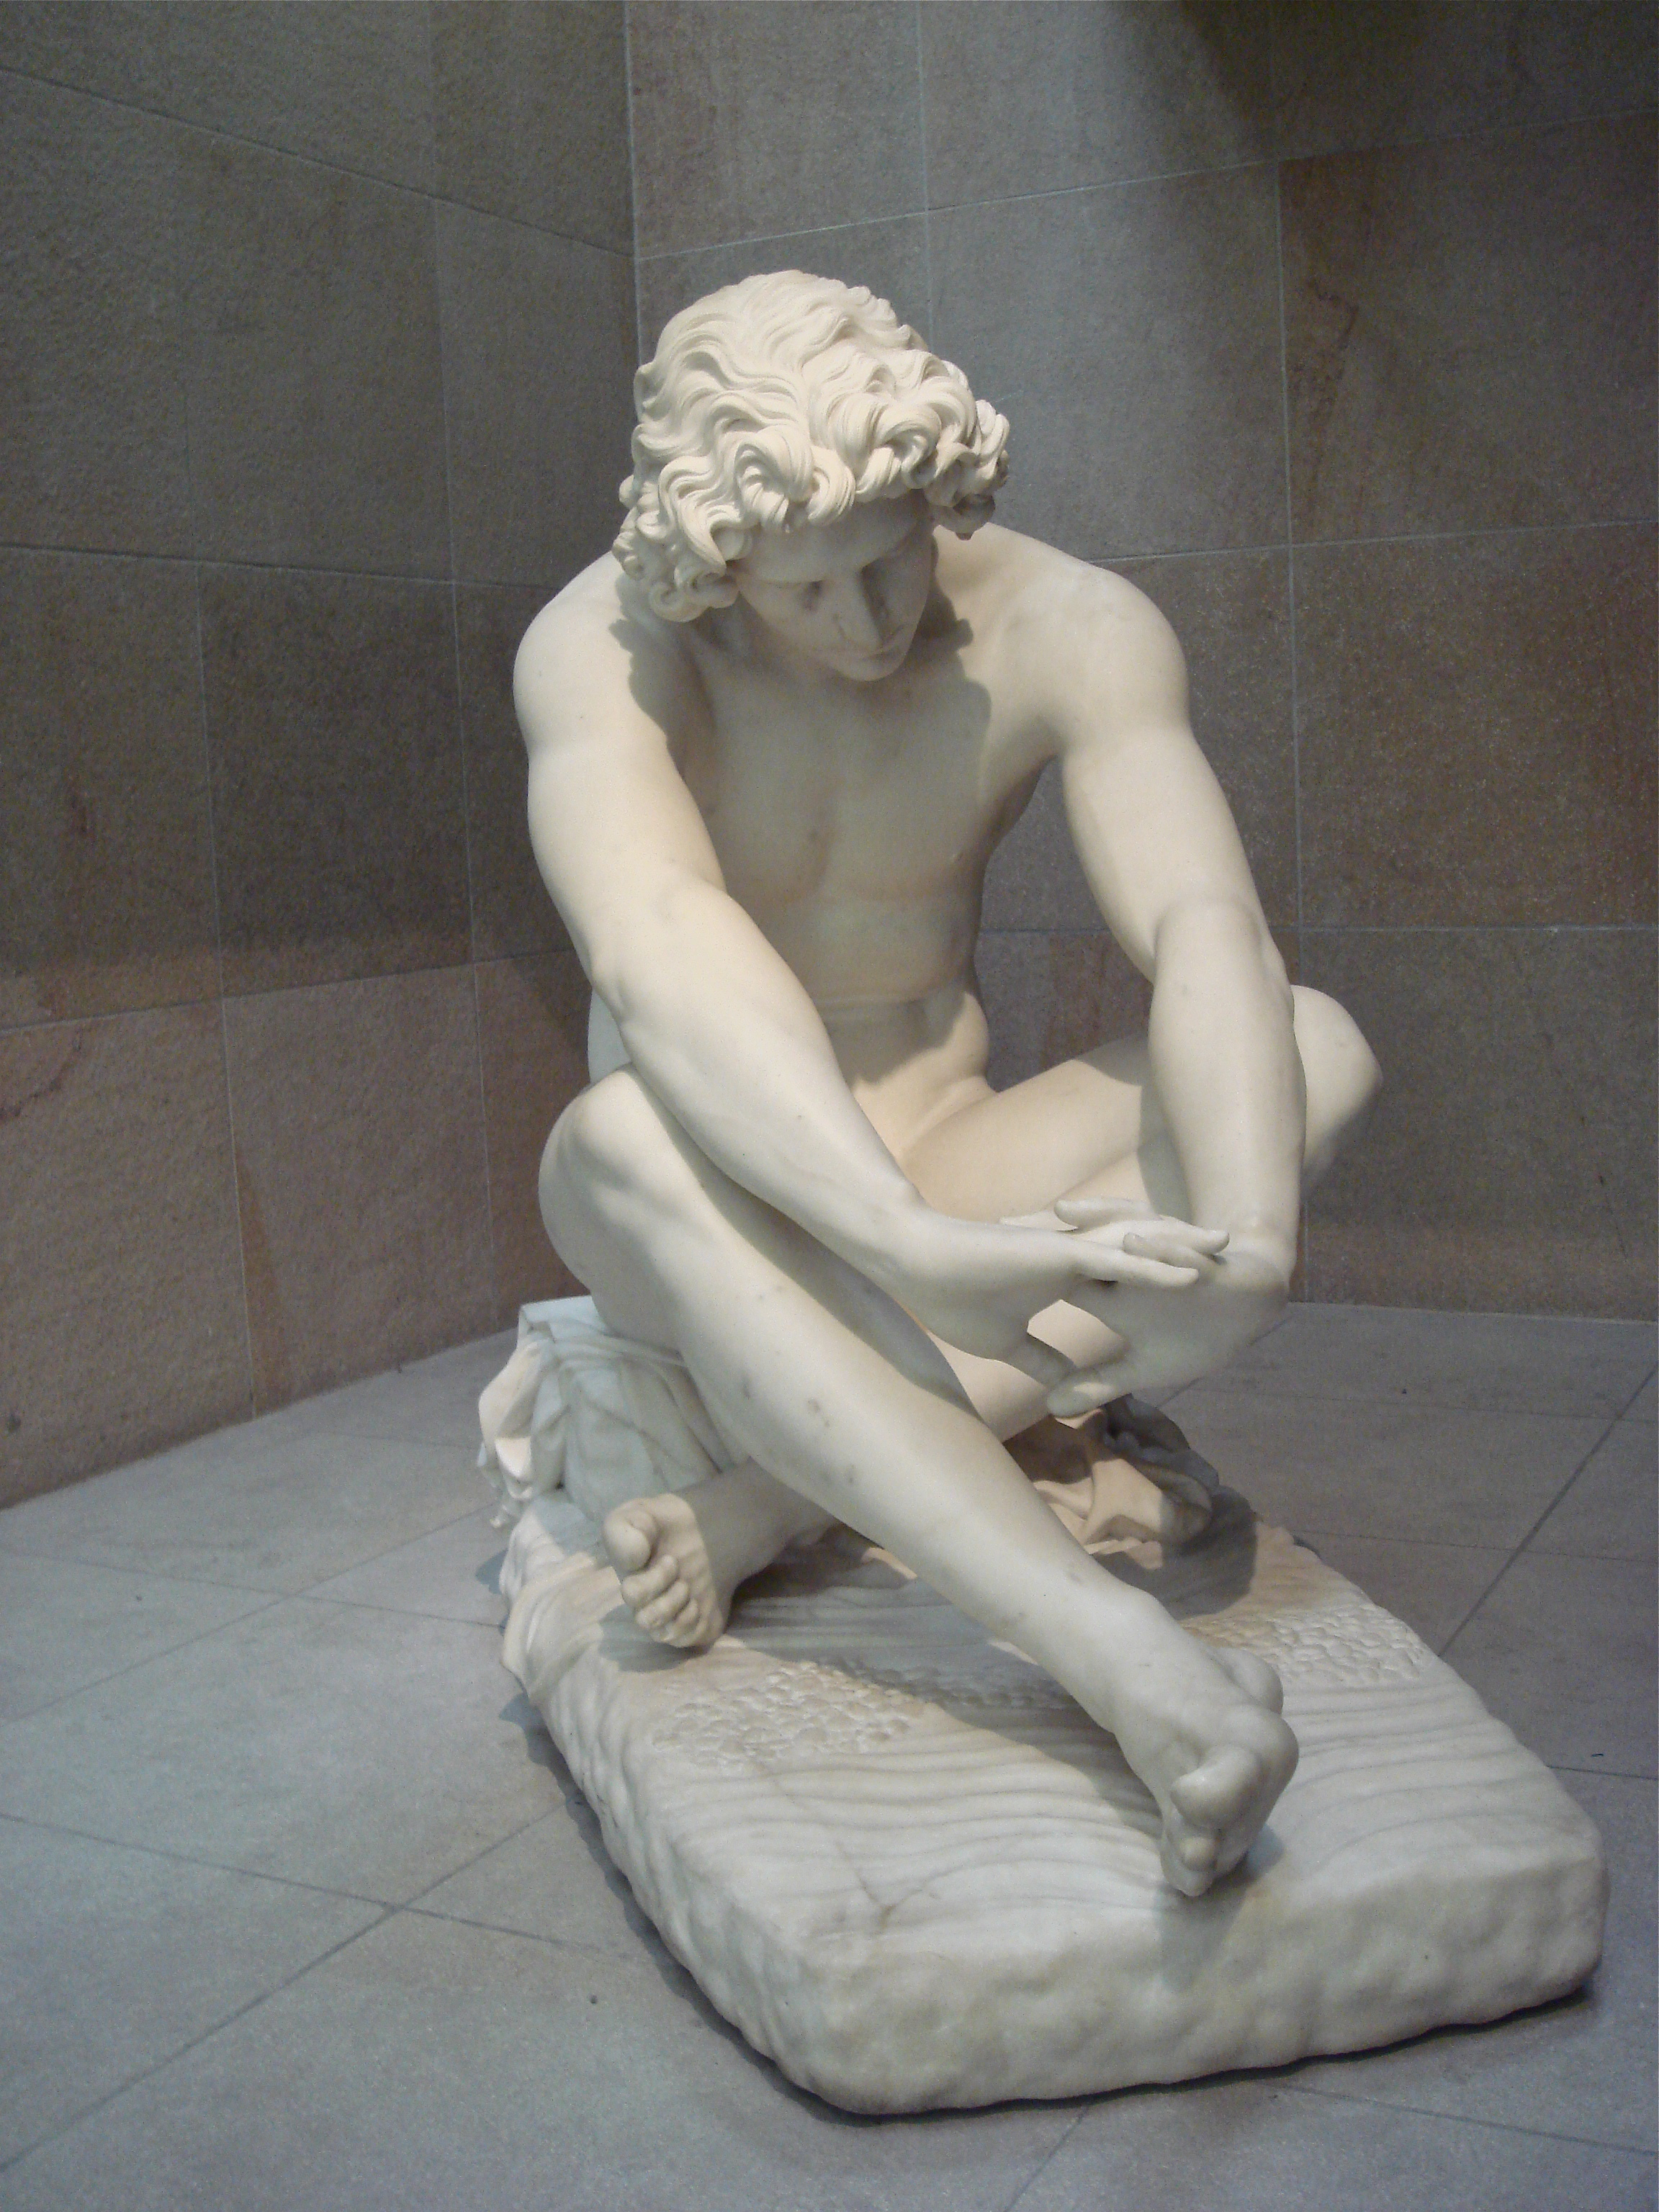 Statue in the Musee d'Orsay in Paris, France